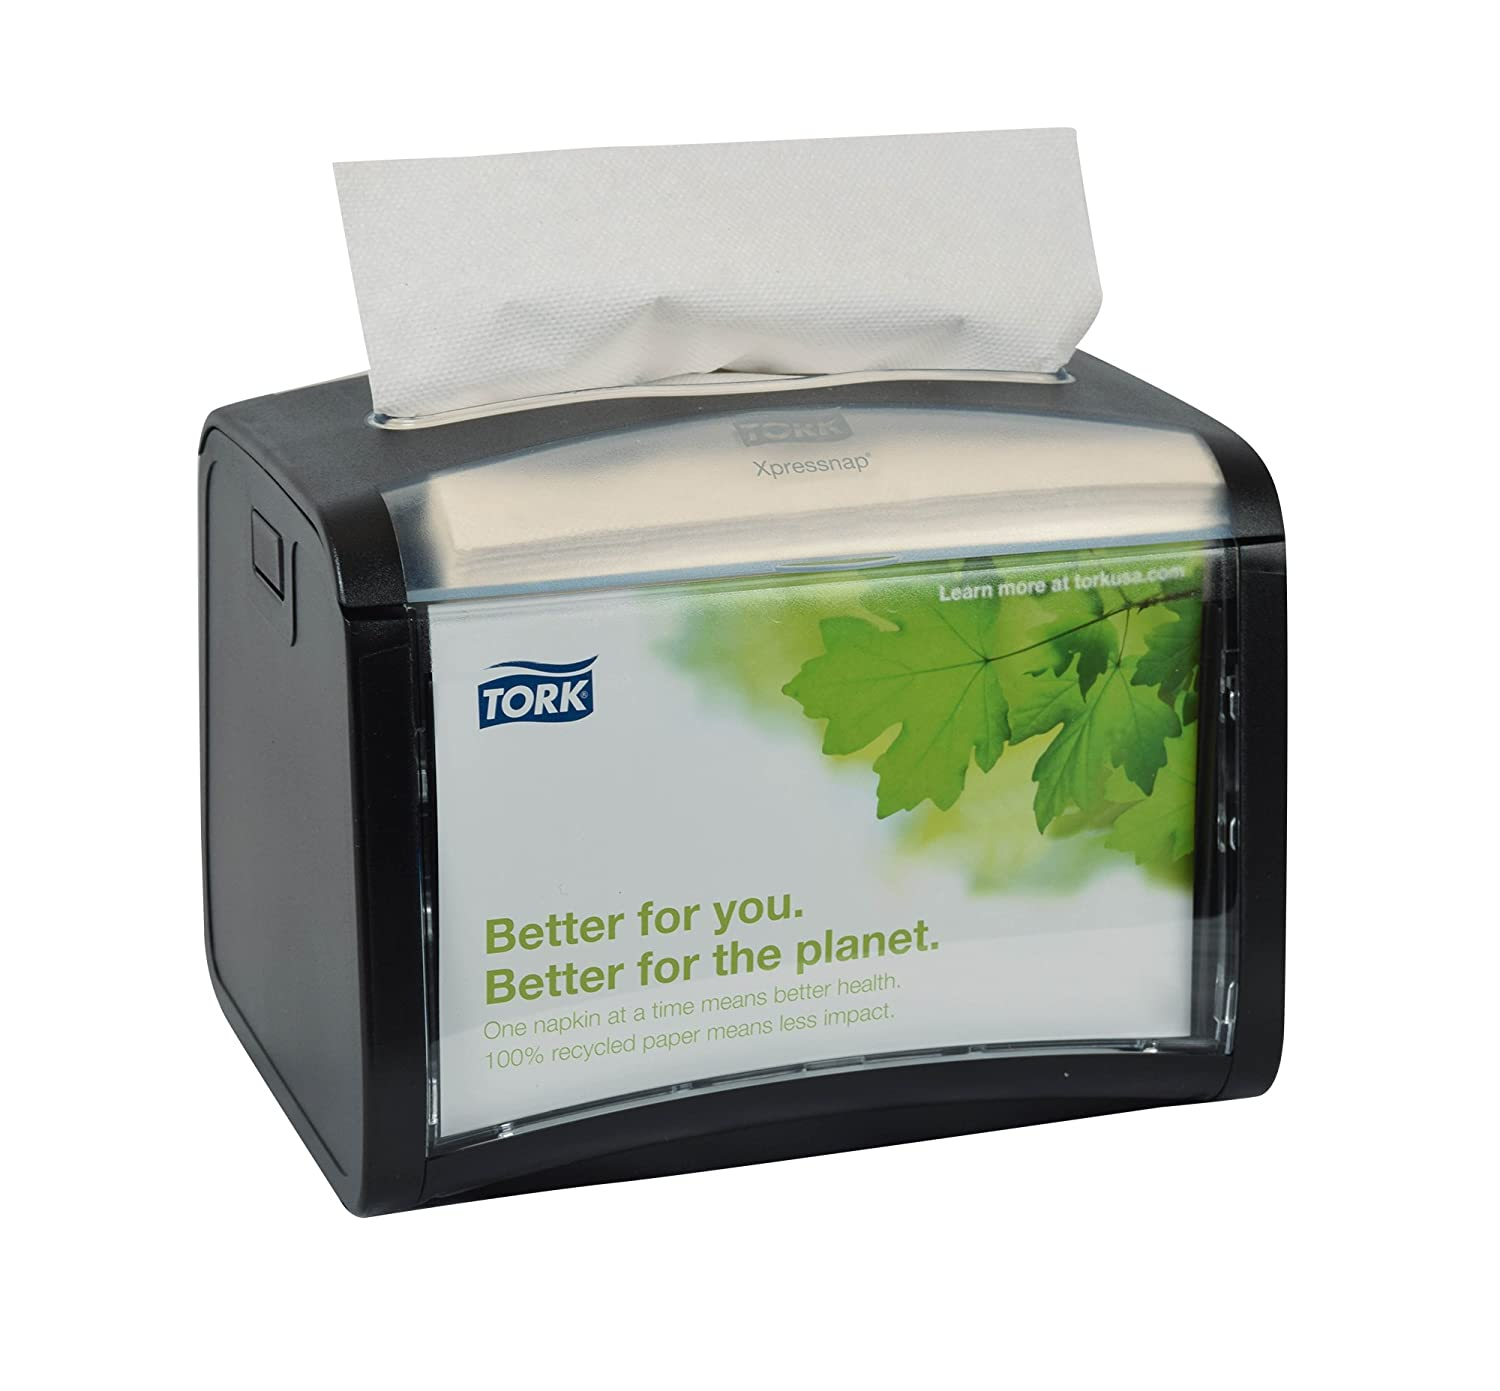 Amazon.com: Tork 6232000 Xpressnap Tabletop Napkin Dispenser, Plastic, Black (Pack of 4): Industrial & Scientific